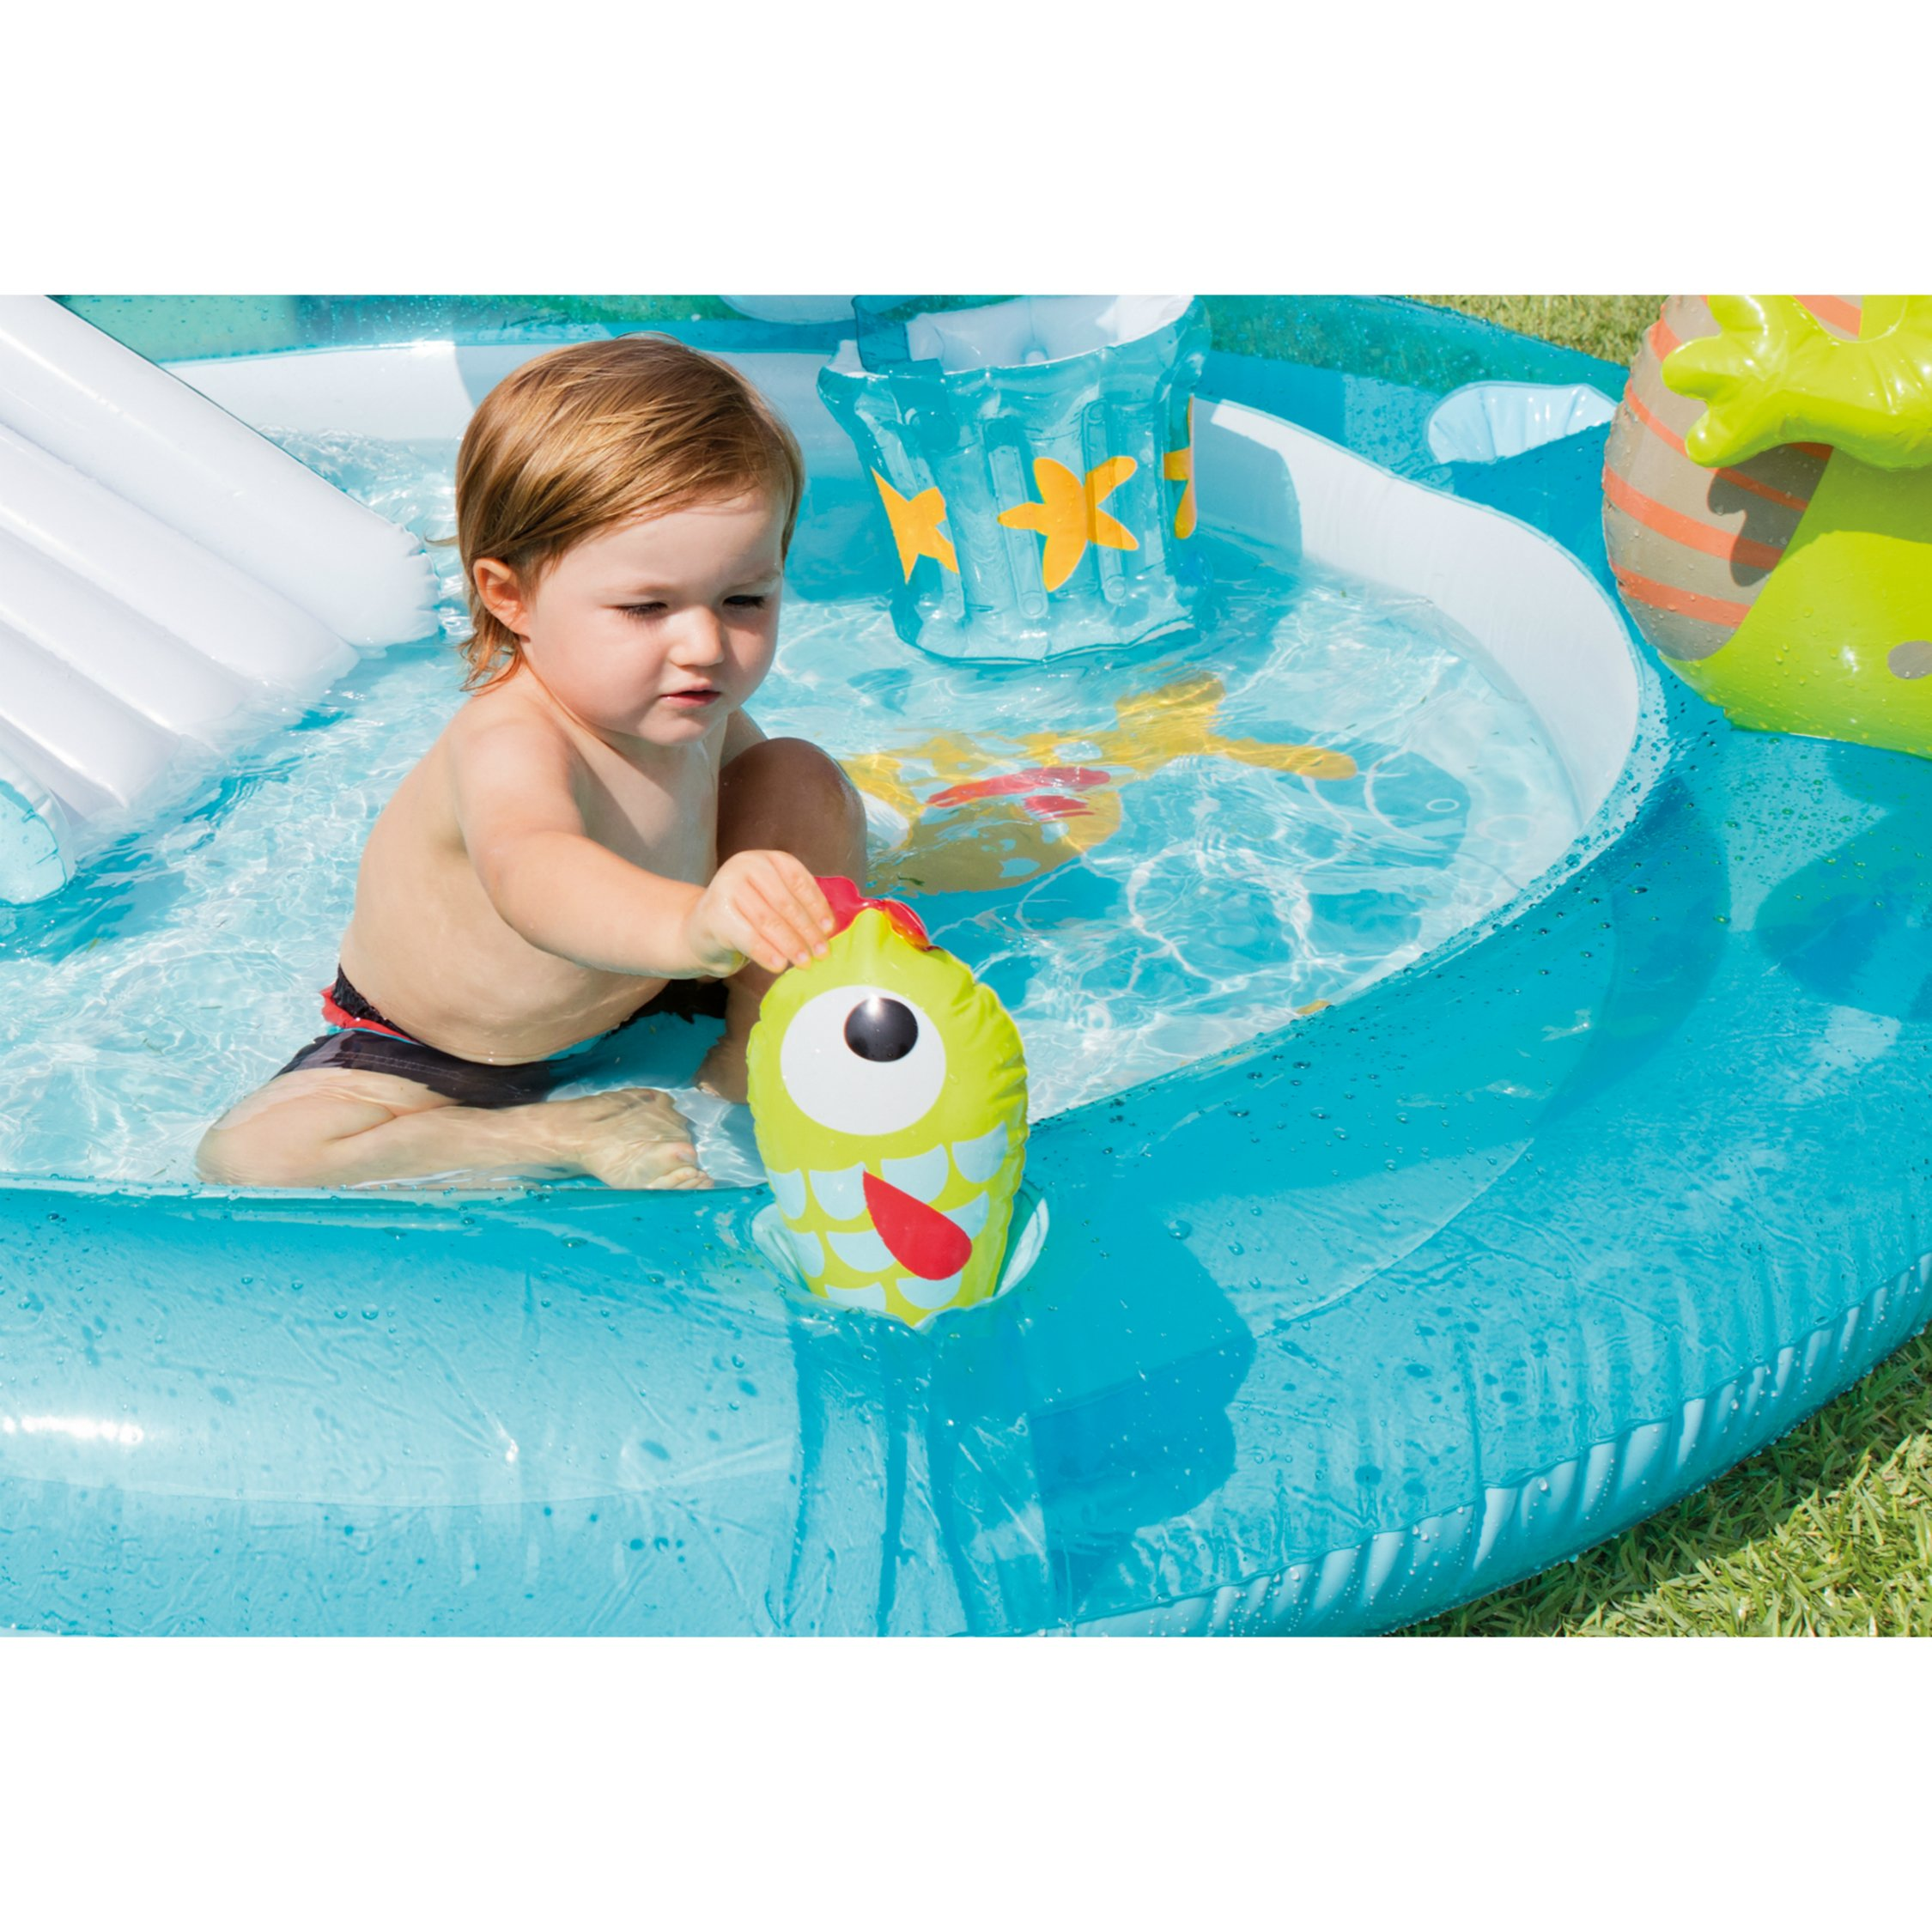 Intex Gator Inflatable Play Center, 80'' X 68'' X 35'', for Ages 2+ by Intex (Image #5)